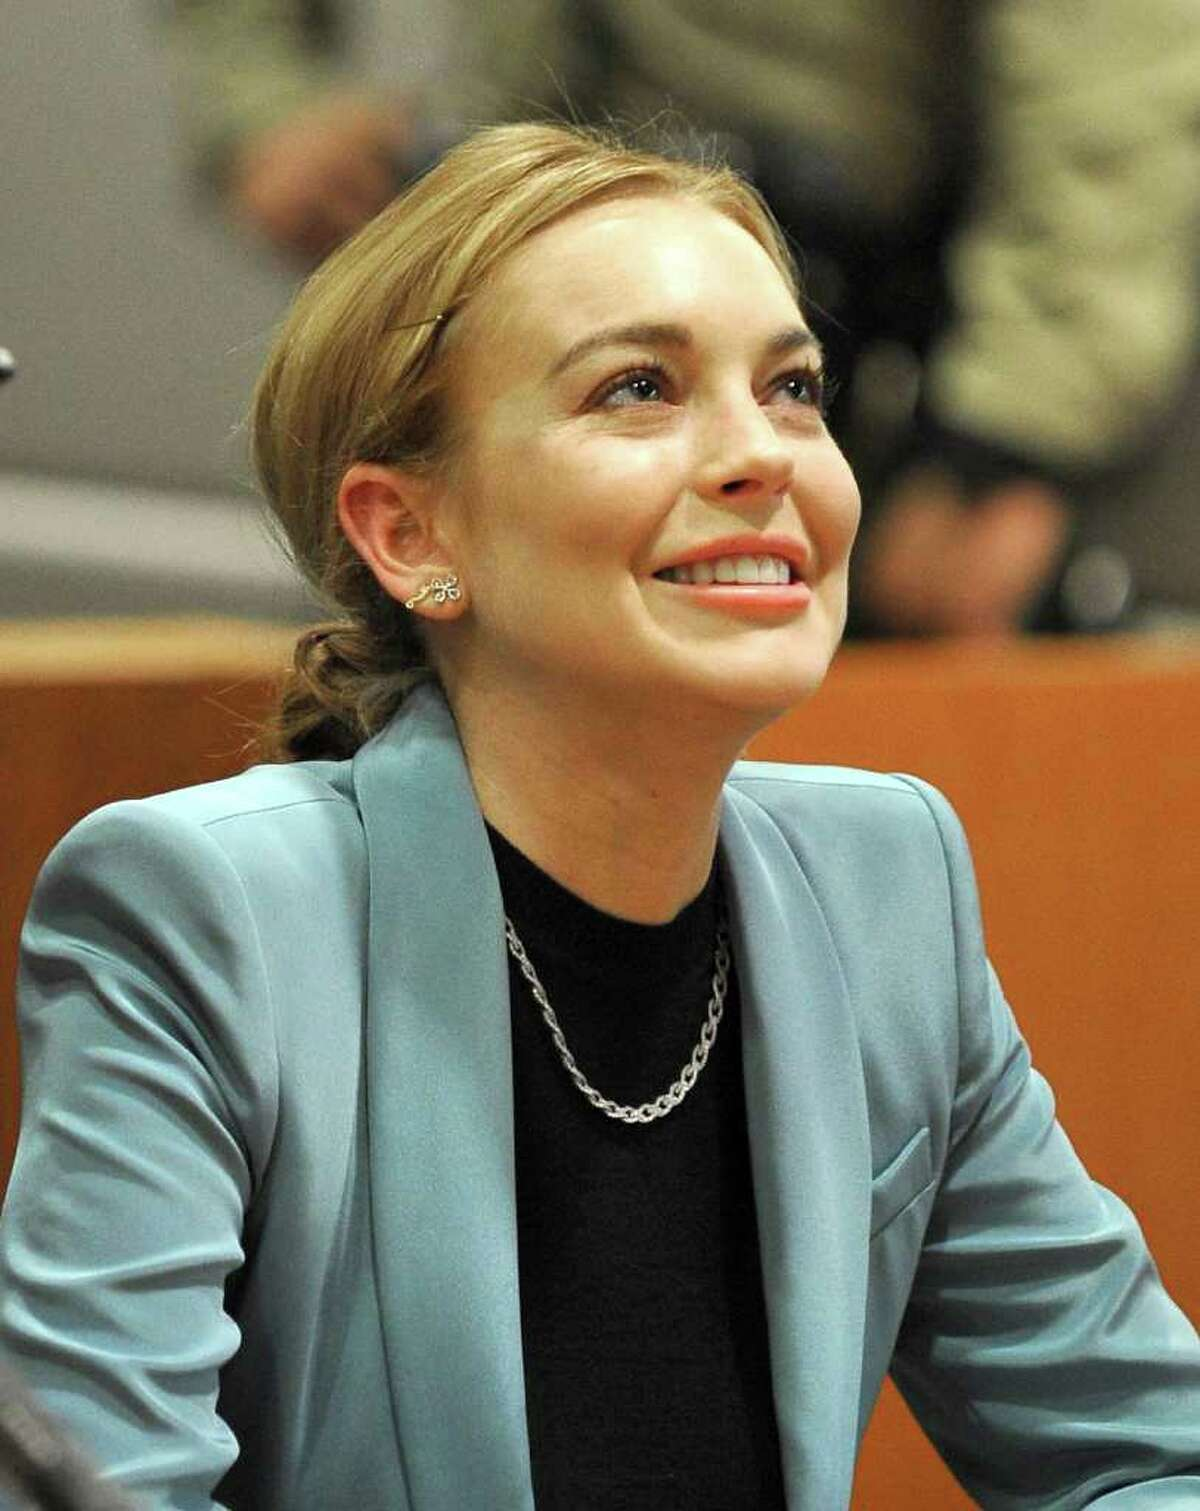 Lindsay Lohan smiles during a progress report on her probation for theft charges at Los Angeles Superior Court Thursday, March 29, 2012. A judge ended Lindsay Lohan's supervised probation on Thursday, giving the actress her freedom after nearly two years of constant court hearings and threats of jail. Lohan thanked Superior Court Judge Stephanie Sautner for her patience and let out a sigh of relief as she exited the courtroom after the brief hearing. (AP Photo/Joe Klamar, Pool)